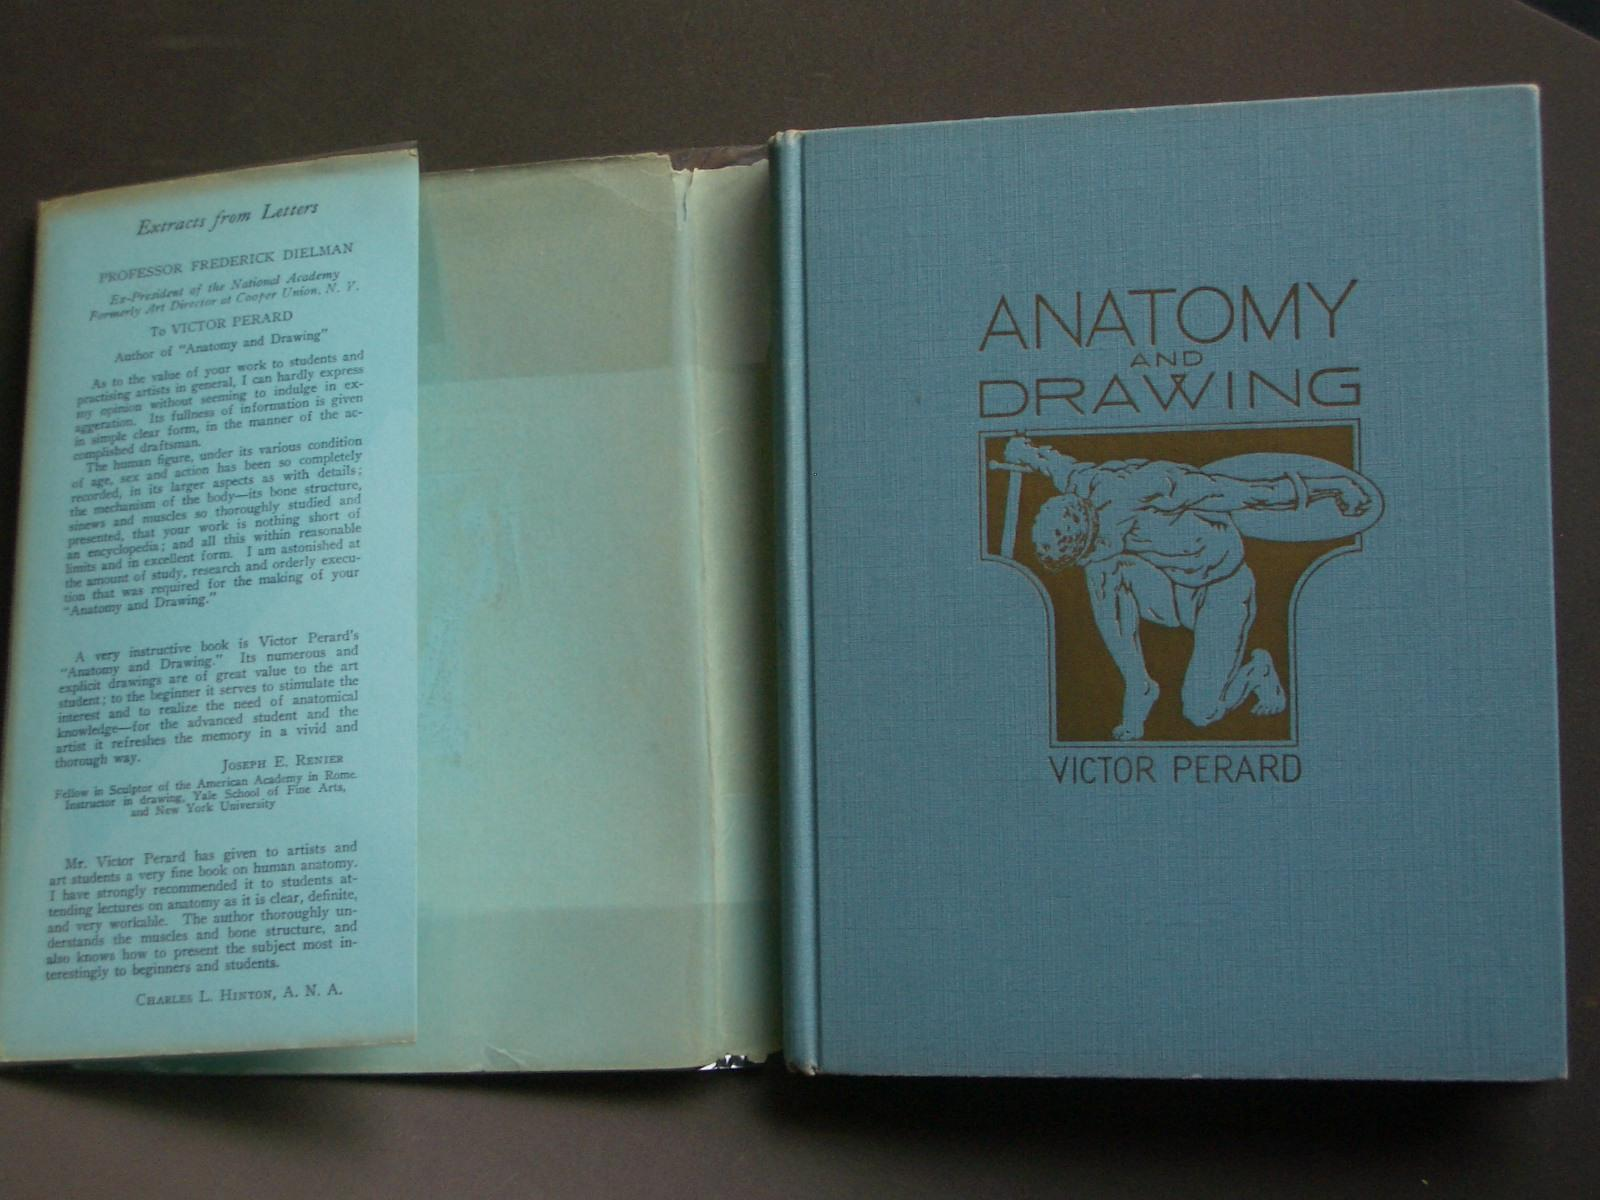 Fancy Anatomy And Drawing By Victor Perard Adornment - Anatomy and ...